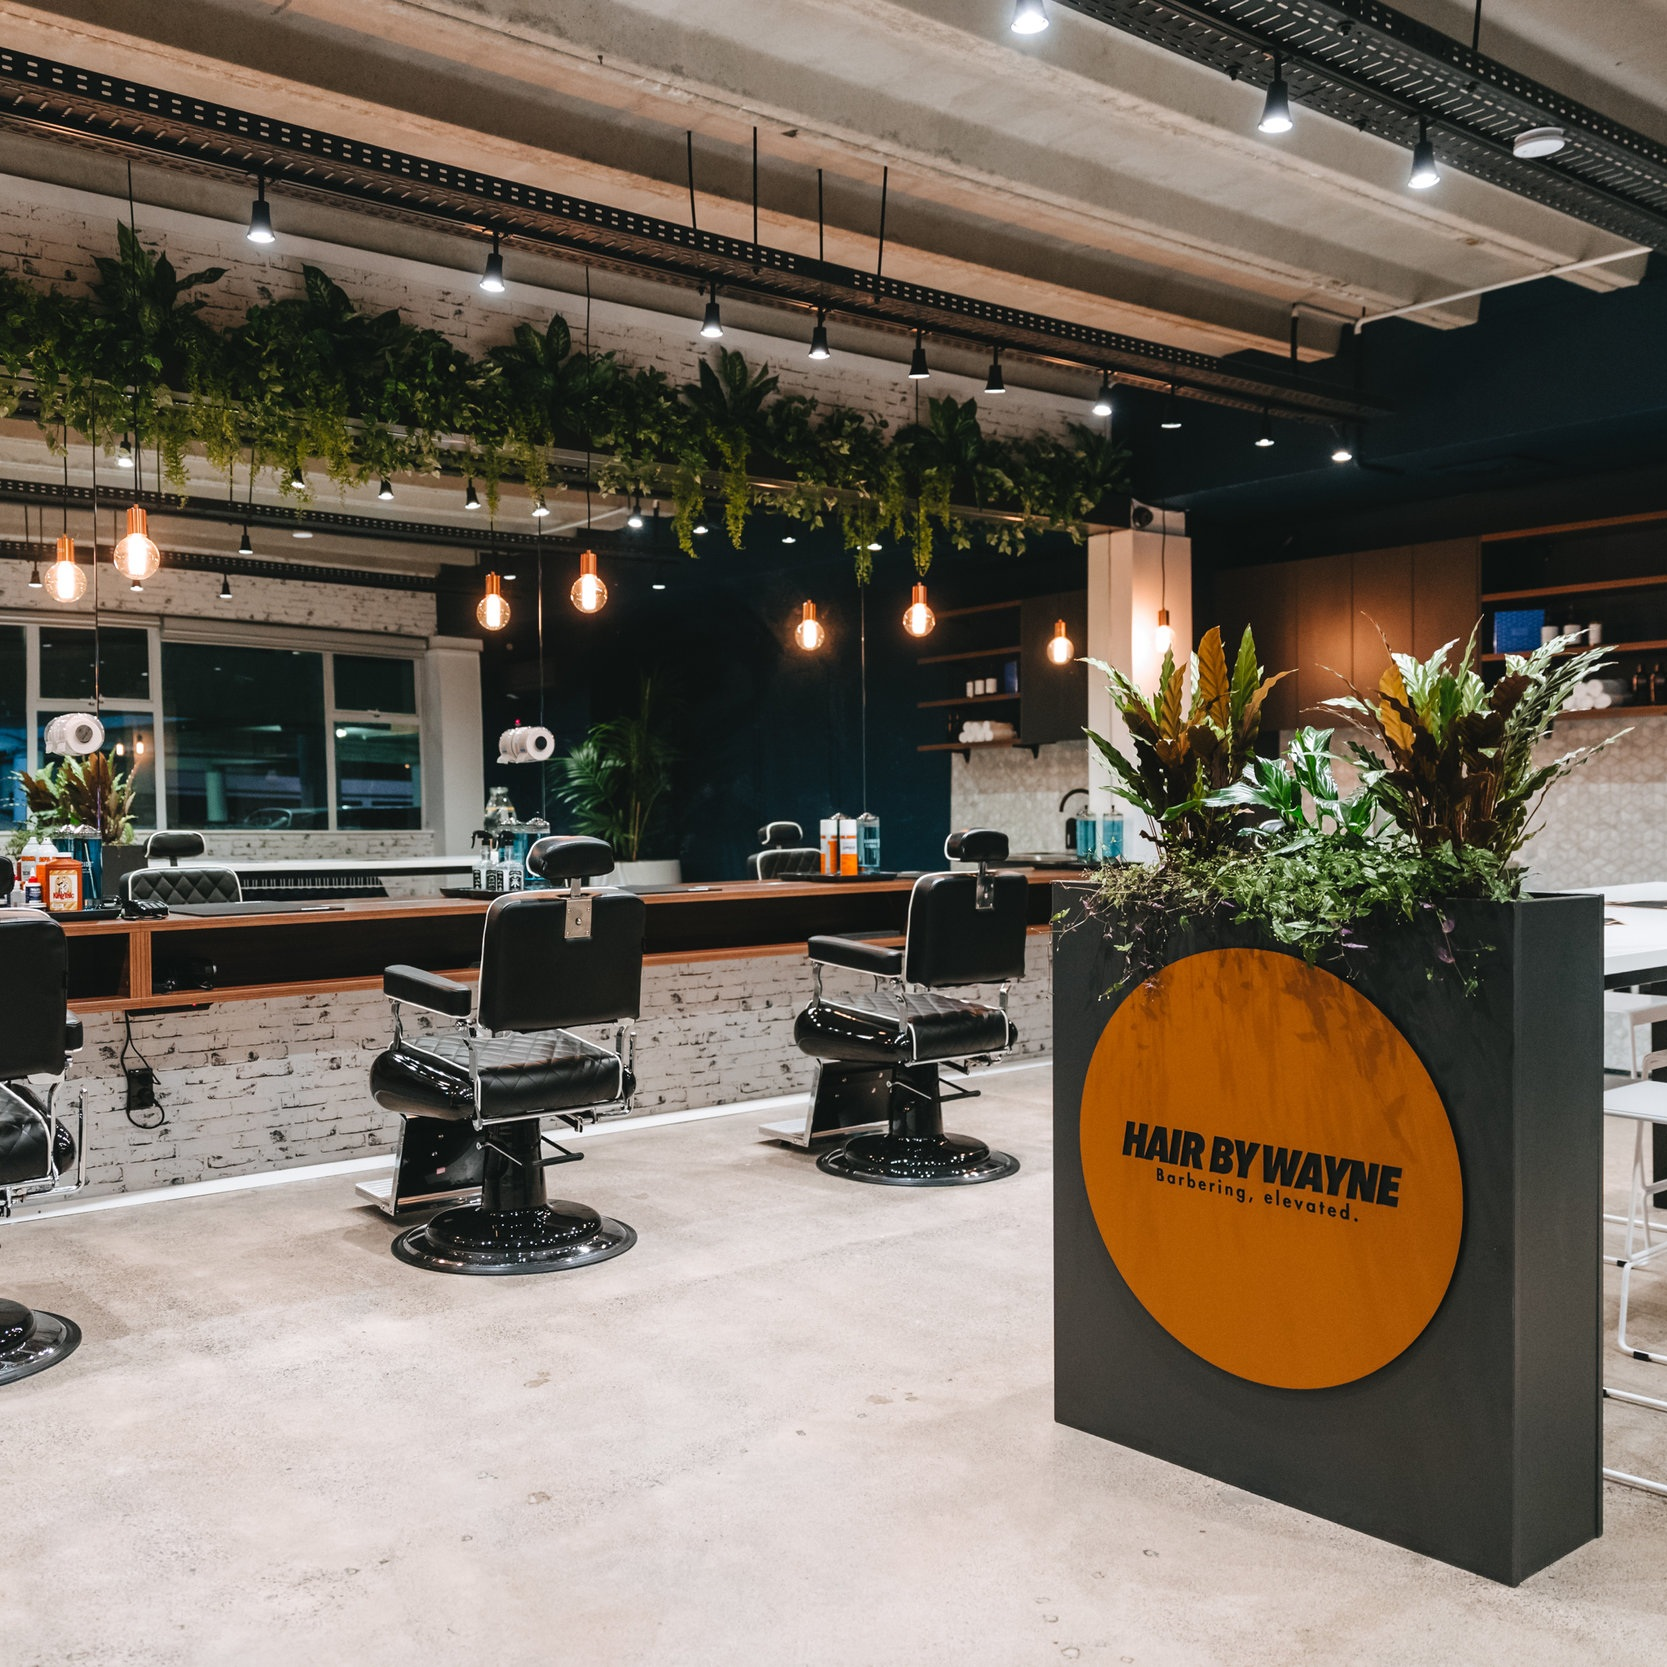 HAIR BY WAYNE - A brand new barber shop in the heart of Epsom…